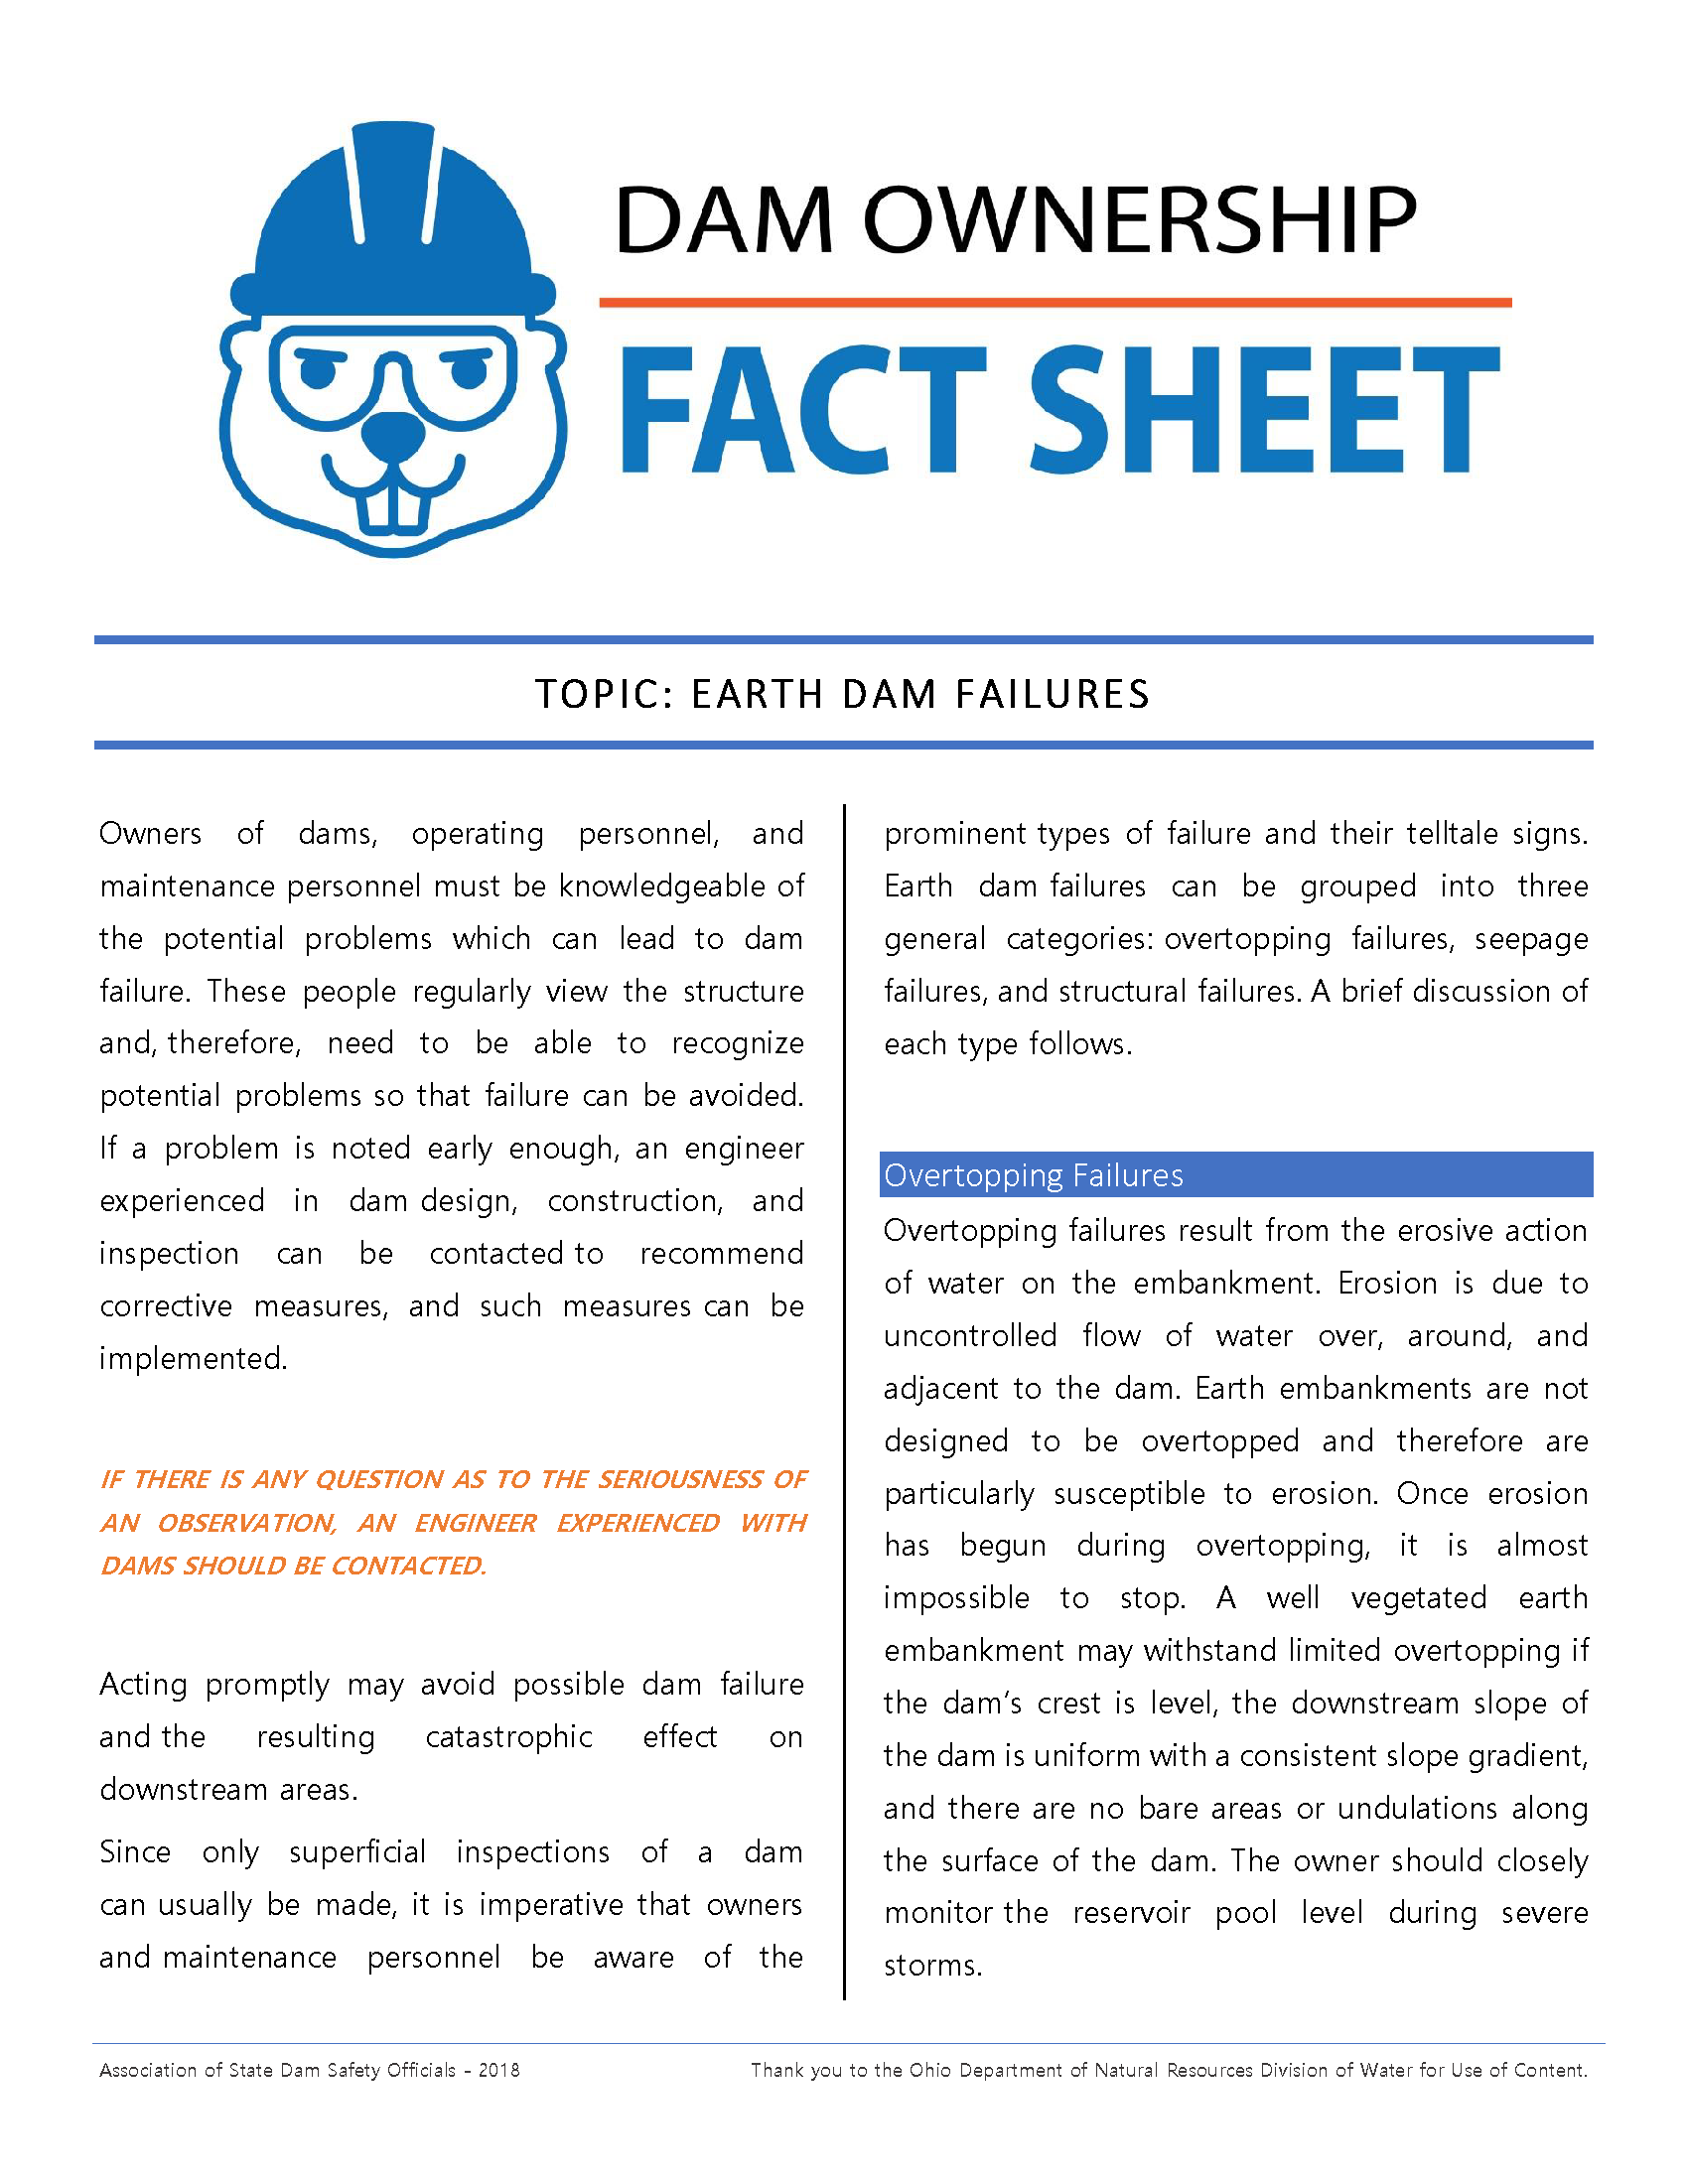 Eart Dam Failure Fact Sheet 2018_Page_1.png